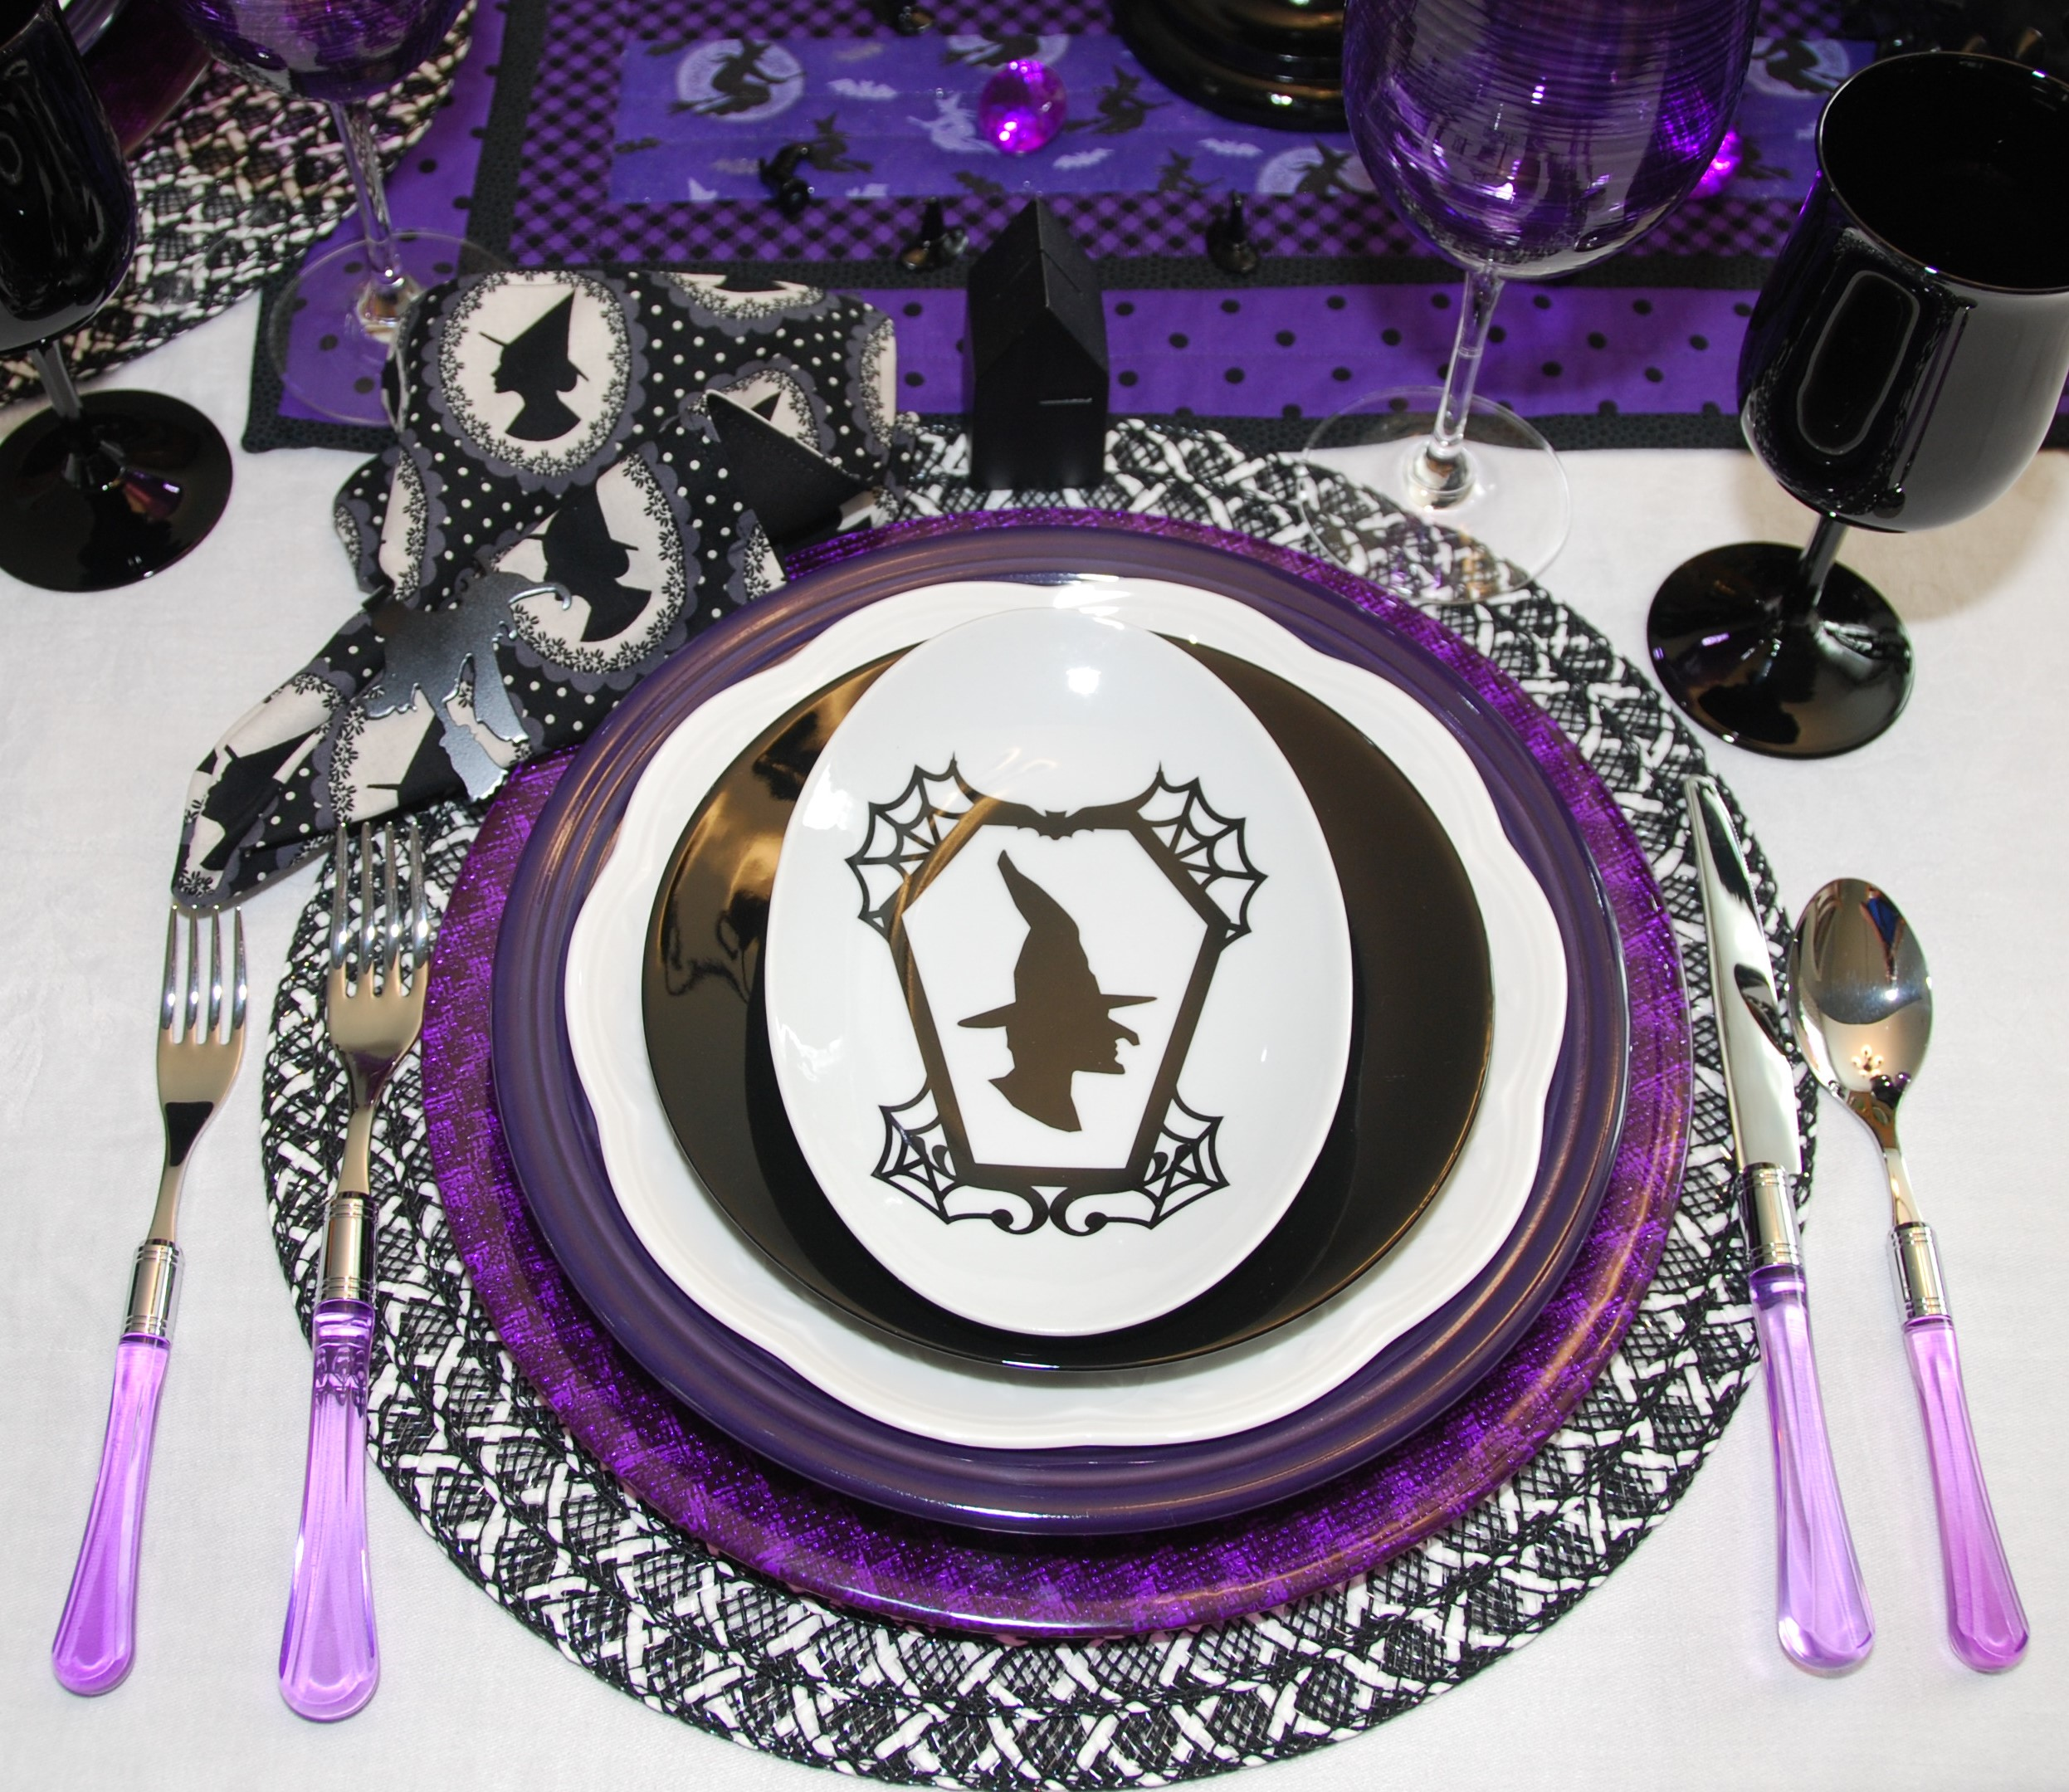 The silverware is Zaffiro Flatware, I think I got it on sale at Neiman Marcus. Over the years I bought 6 different colors because I love the way it looks. The dinner plate is Fiesta in purple, it is actually lighter in color than the photo shows. The white plate is more for spring tables but the butterfly design is hidden. It is by Lenox and is called Butterfly Meadow Cloud. I think I found them at HomeGoods. The black plate is by 10 Strawberry Street, I think it came from HomeGoods as well. I looked and looked for months for a plate with a witch on it but I wanted black and white only, no orange. Lots of witch plates but none black and white. I finally found these on Ebay, Crate and Barrel sold them a few years ago. I bought the black house place card holders on Ebay but they have them at Target, Hearth and Hand with Magnolia. It all came together finally, worked on this one for a long time!